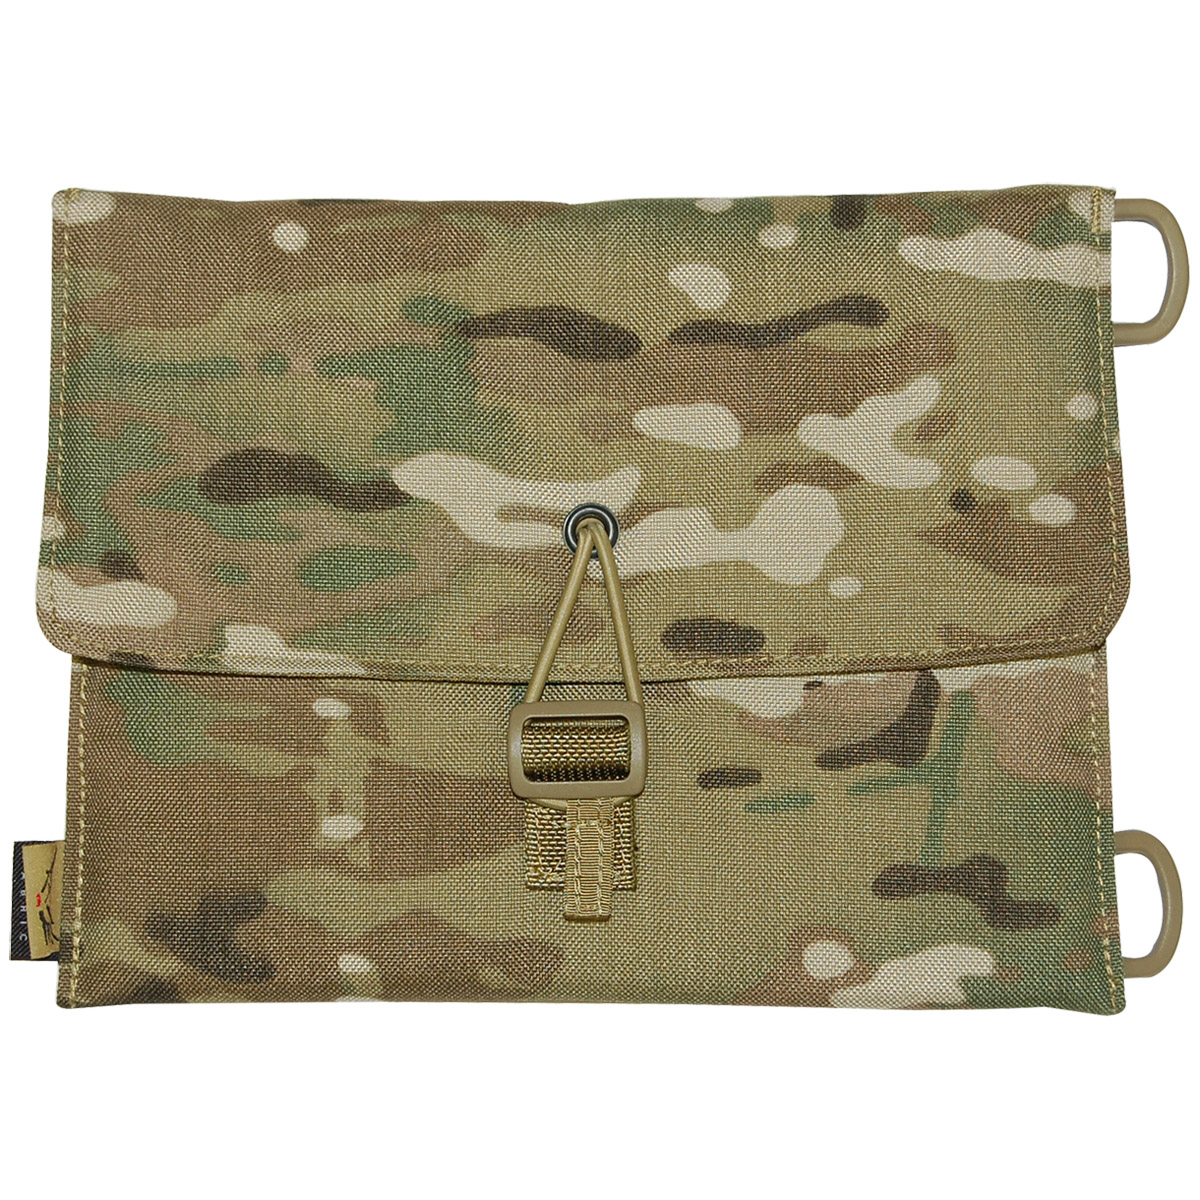 Flyye tactical ipad tablet cover case molle system pouch original sentinel flyye tactical ipad tablet cover case molle system pouch original multicam camo sentinel thumbnail 2 fandeluxe Image collections